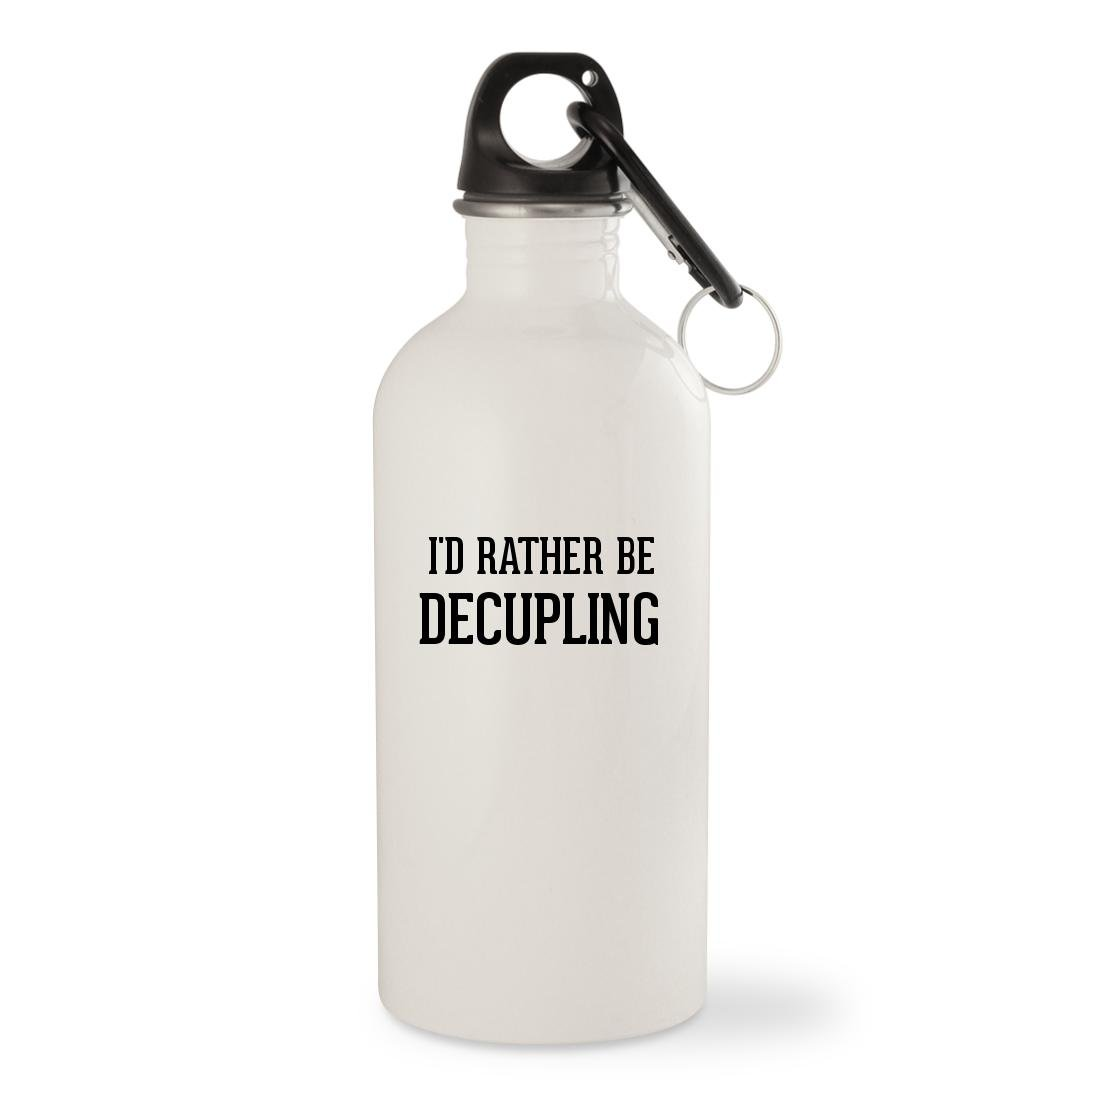 I'd Rather Be DECUPLING - White 20oz Stainless Steel Water Bottle with Carabiner by Molandra Products (Image #1)